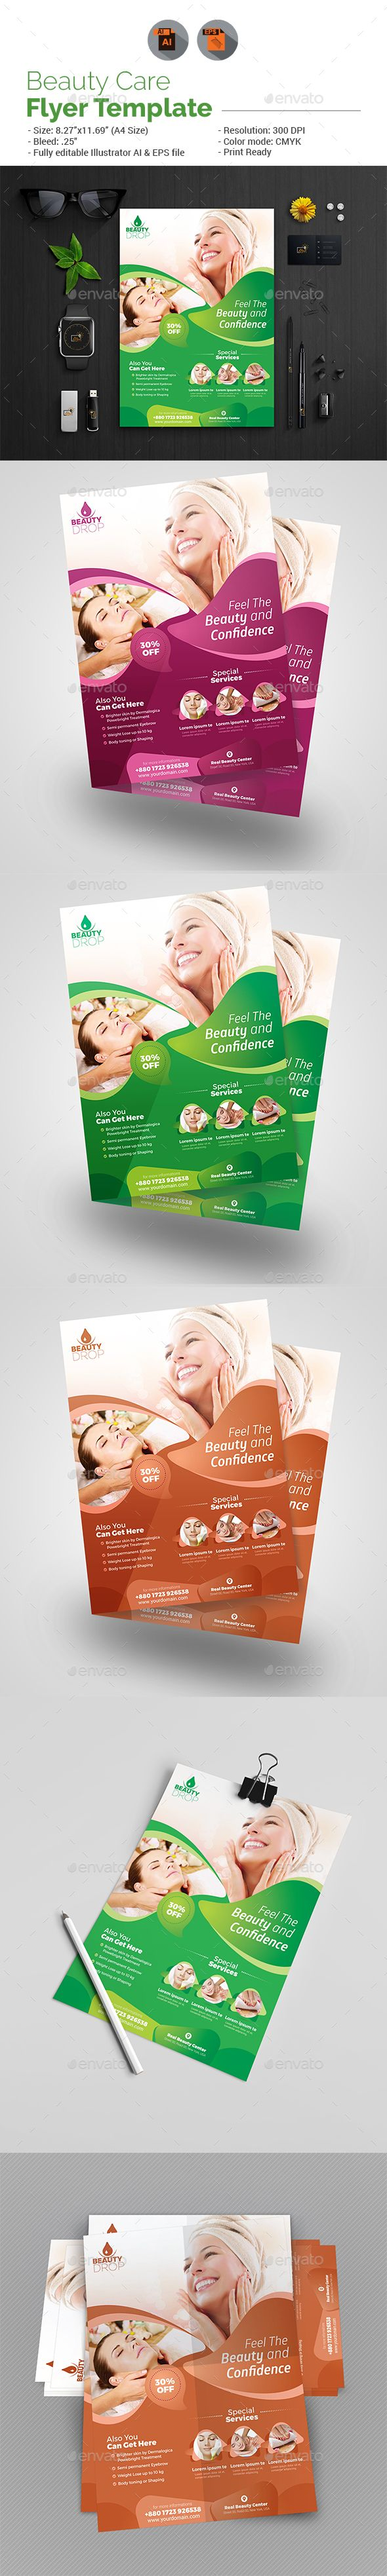 Beauty Care Flyer Template Beauty Care Flyer Template And Template